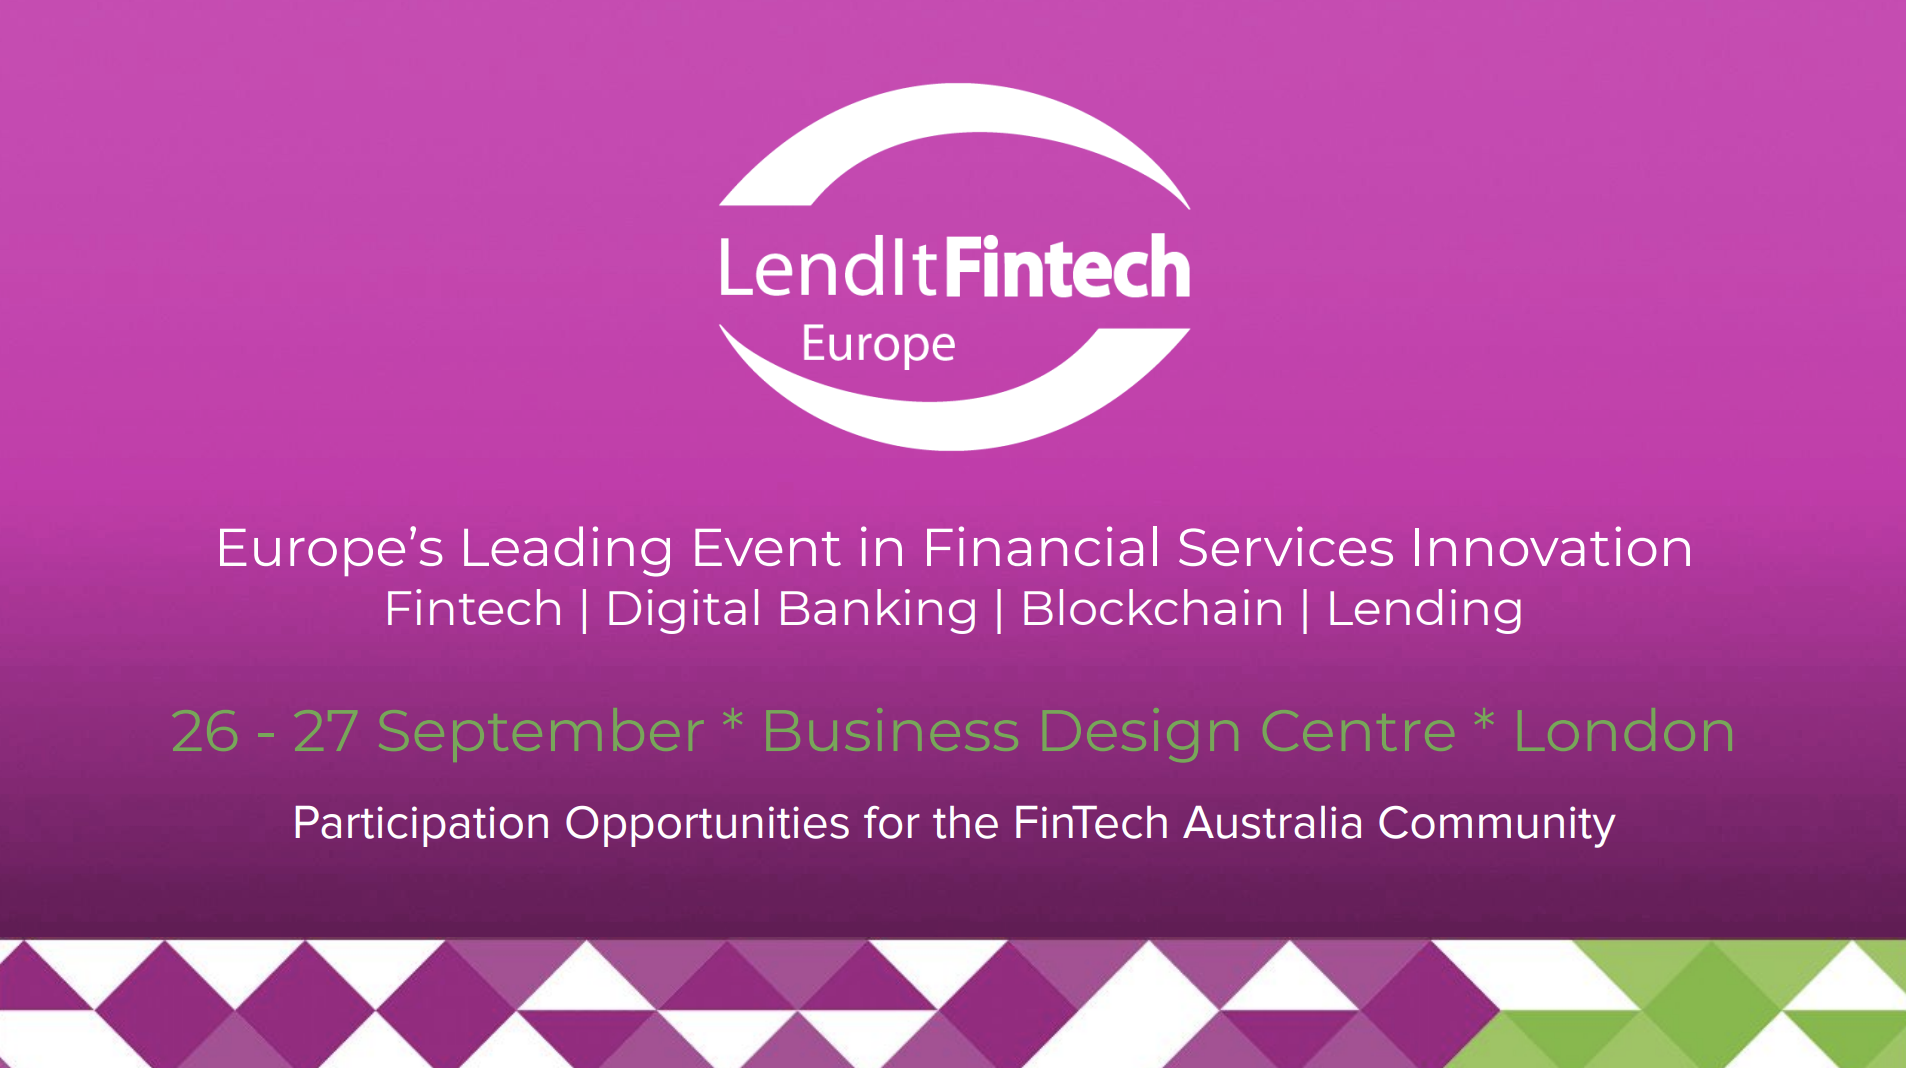 FinTech Australia – FinTech Australia exists to help our country